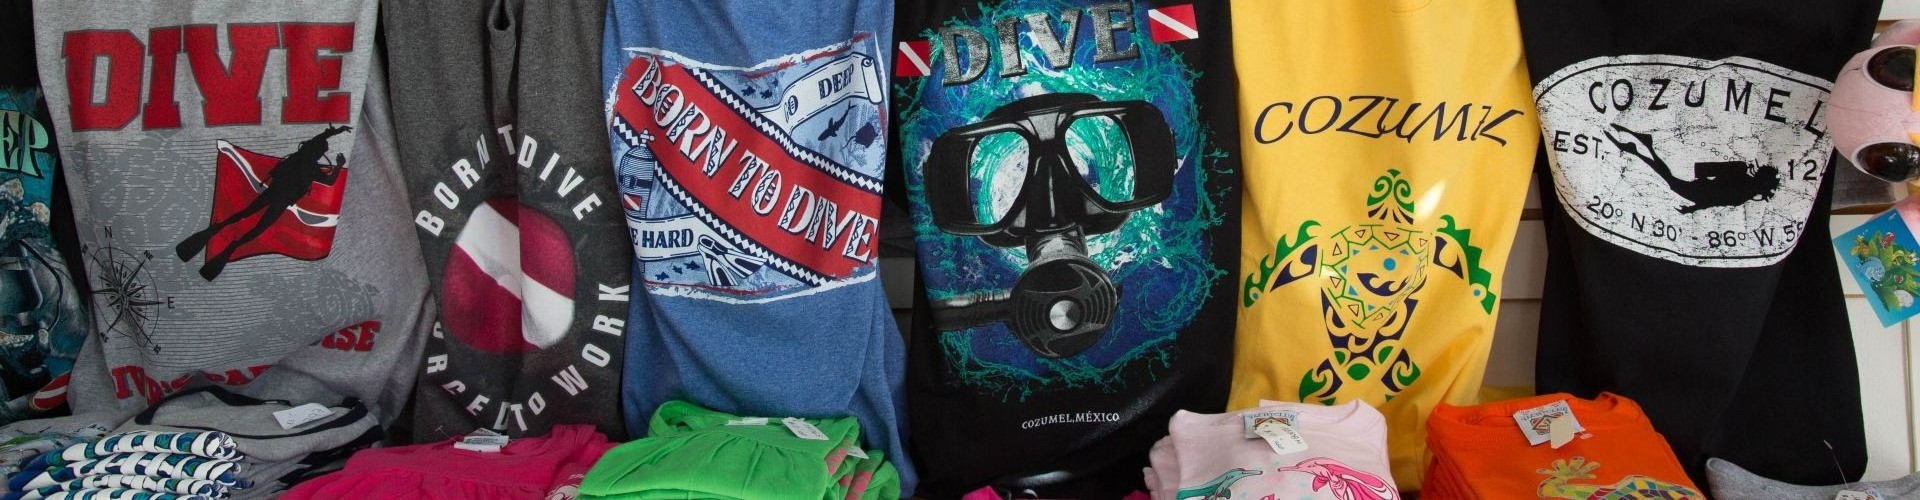 T-Shirt Display at Dive Boutique Cozumel